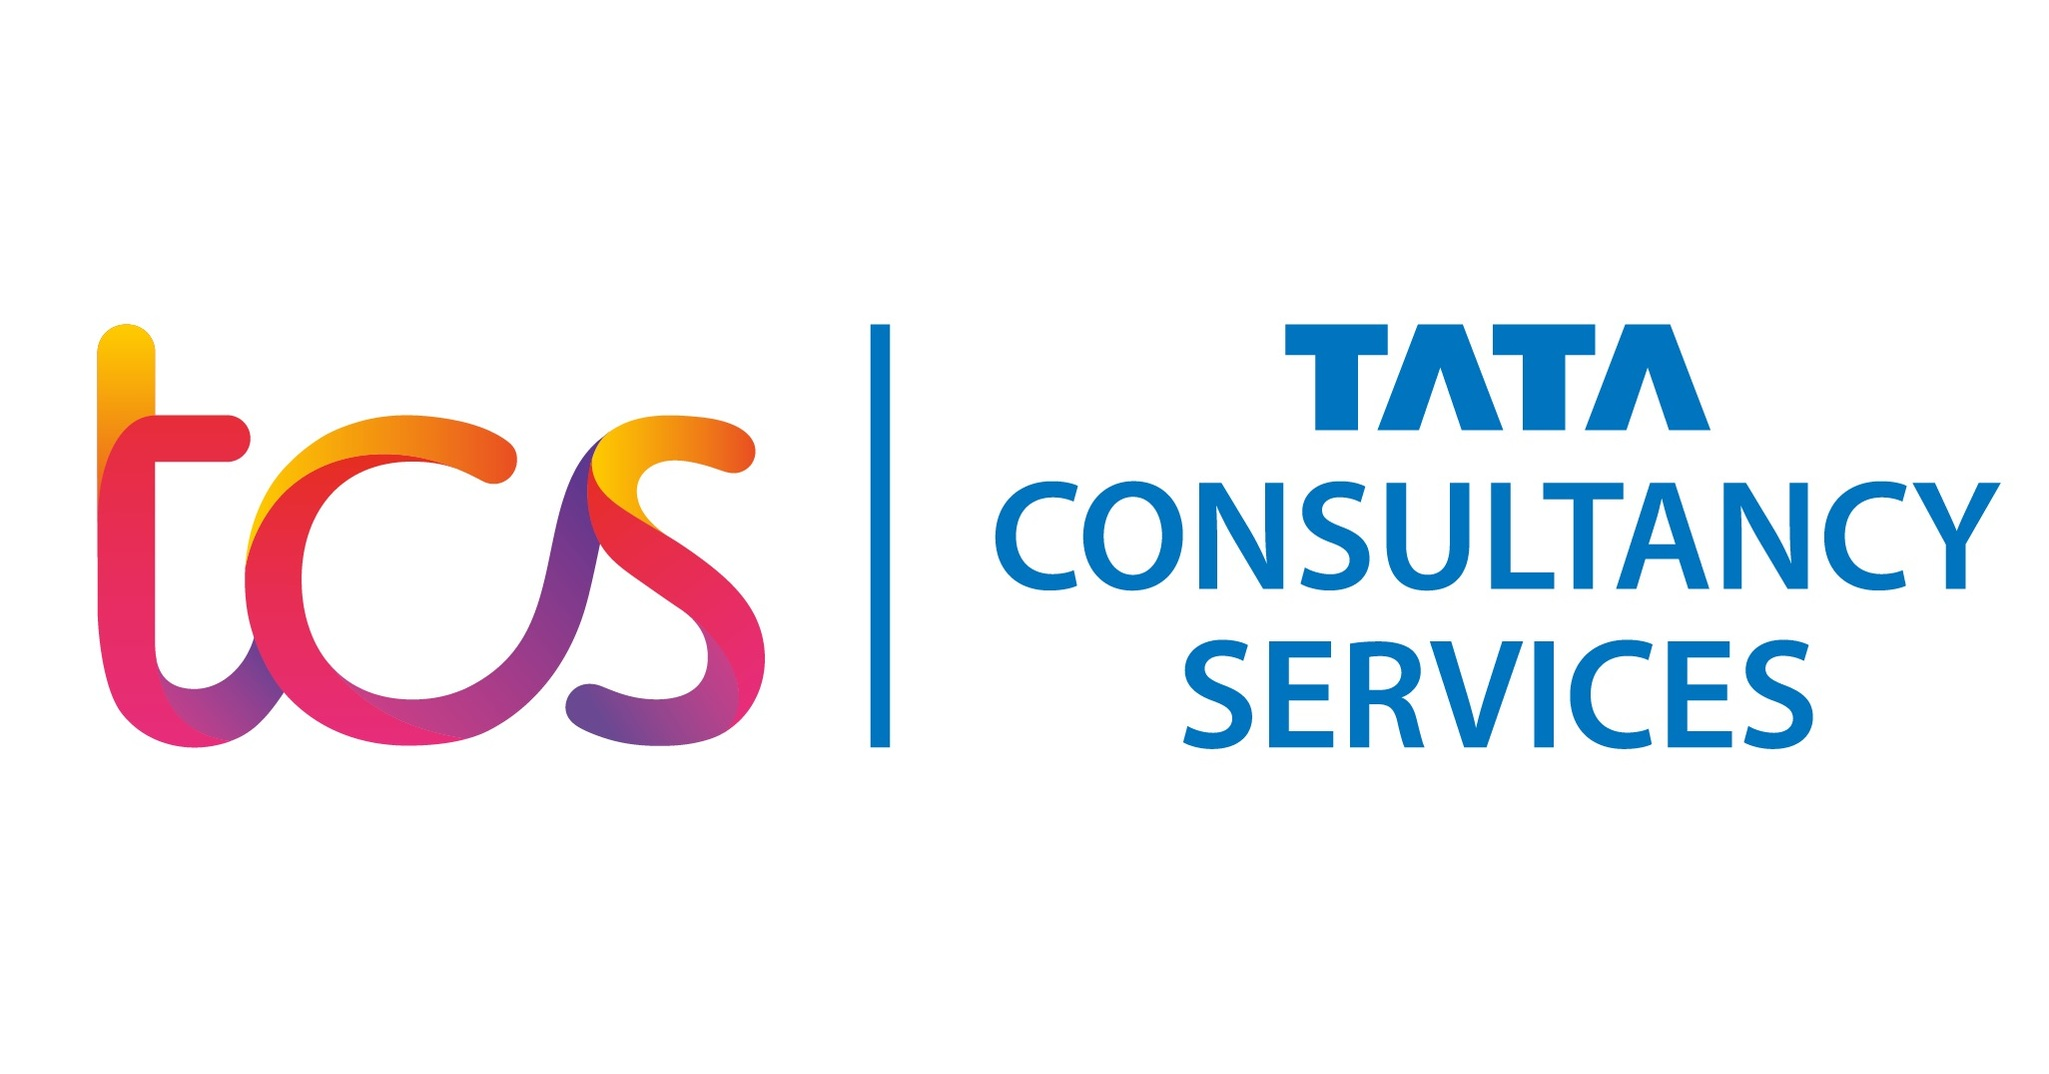 Tata consultancy services reports large deal wins digital demand tata consultancy services reports large deal wins digital demand mark strong q3 nvjuhfo Choice Image